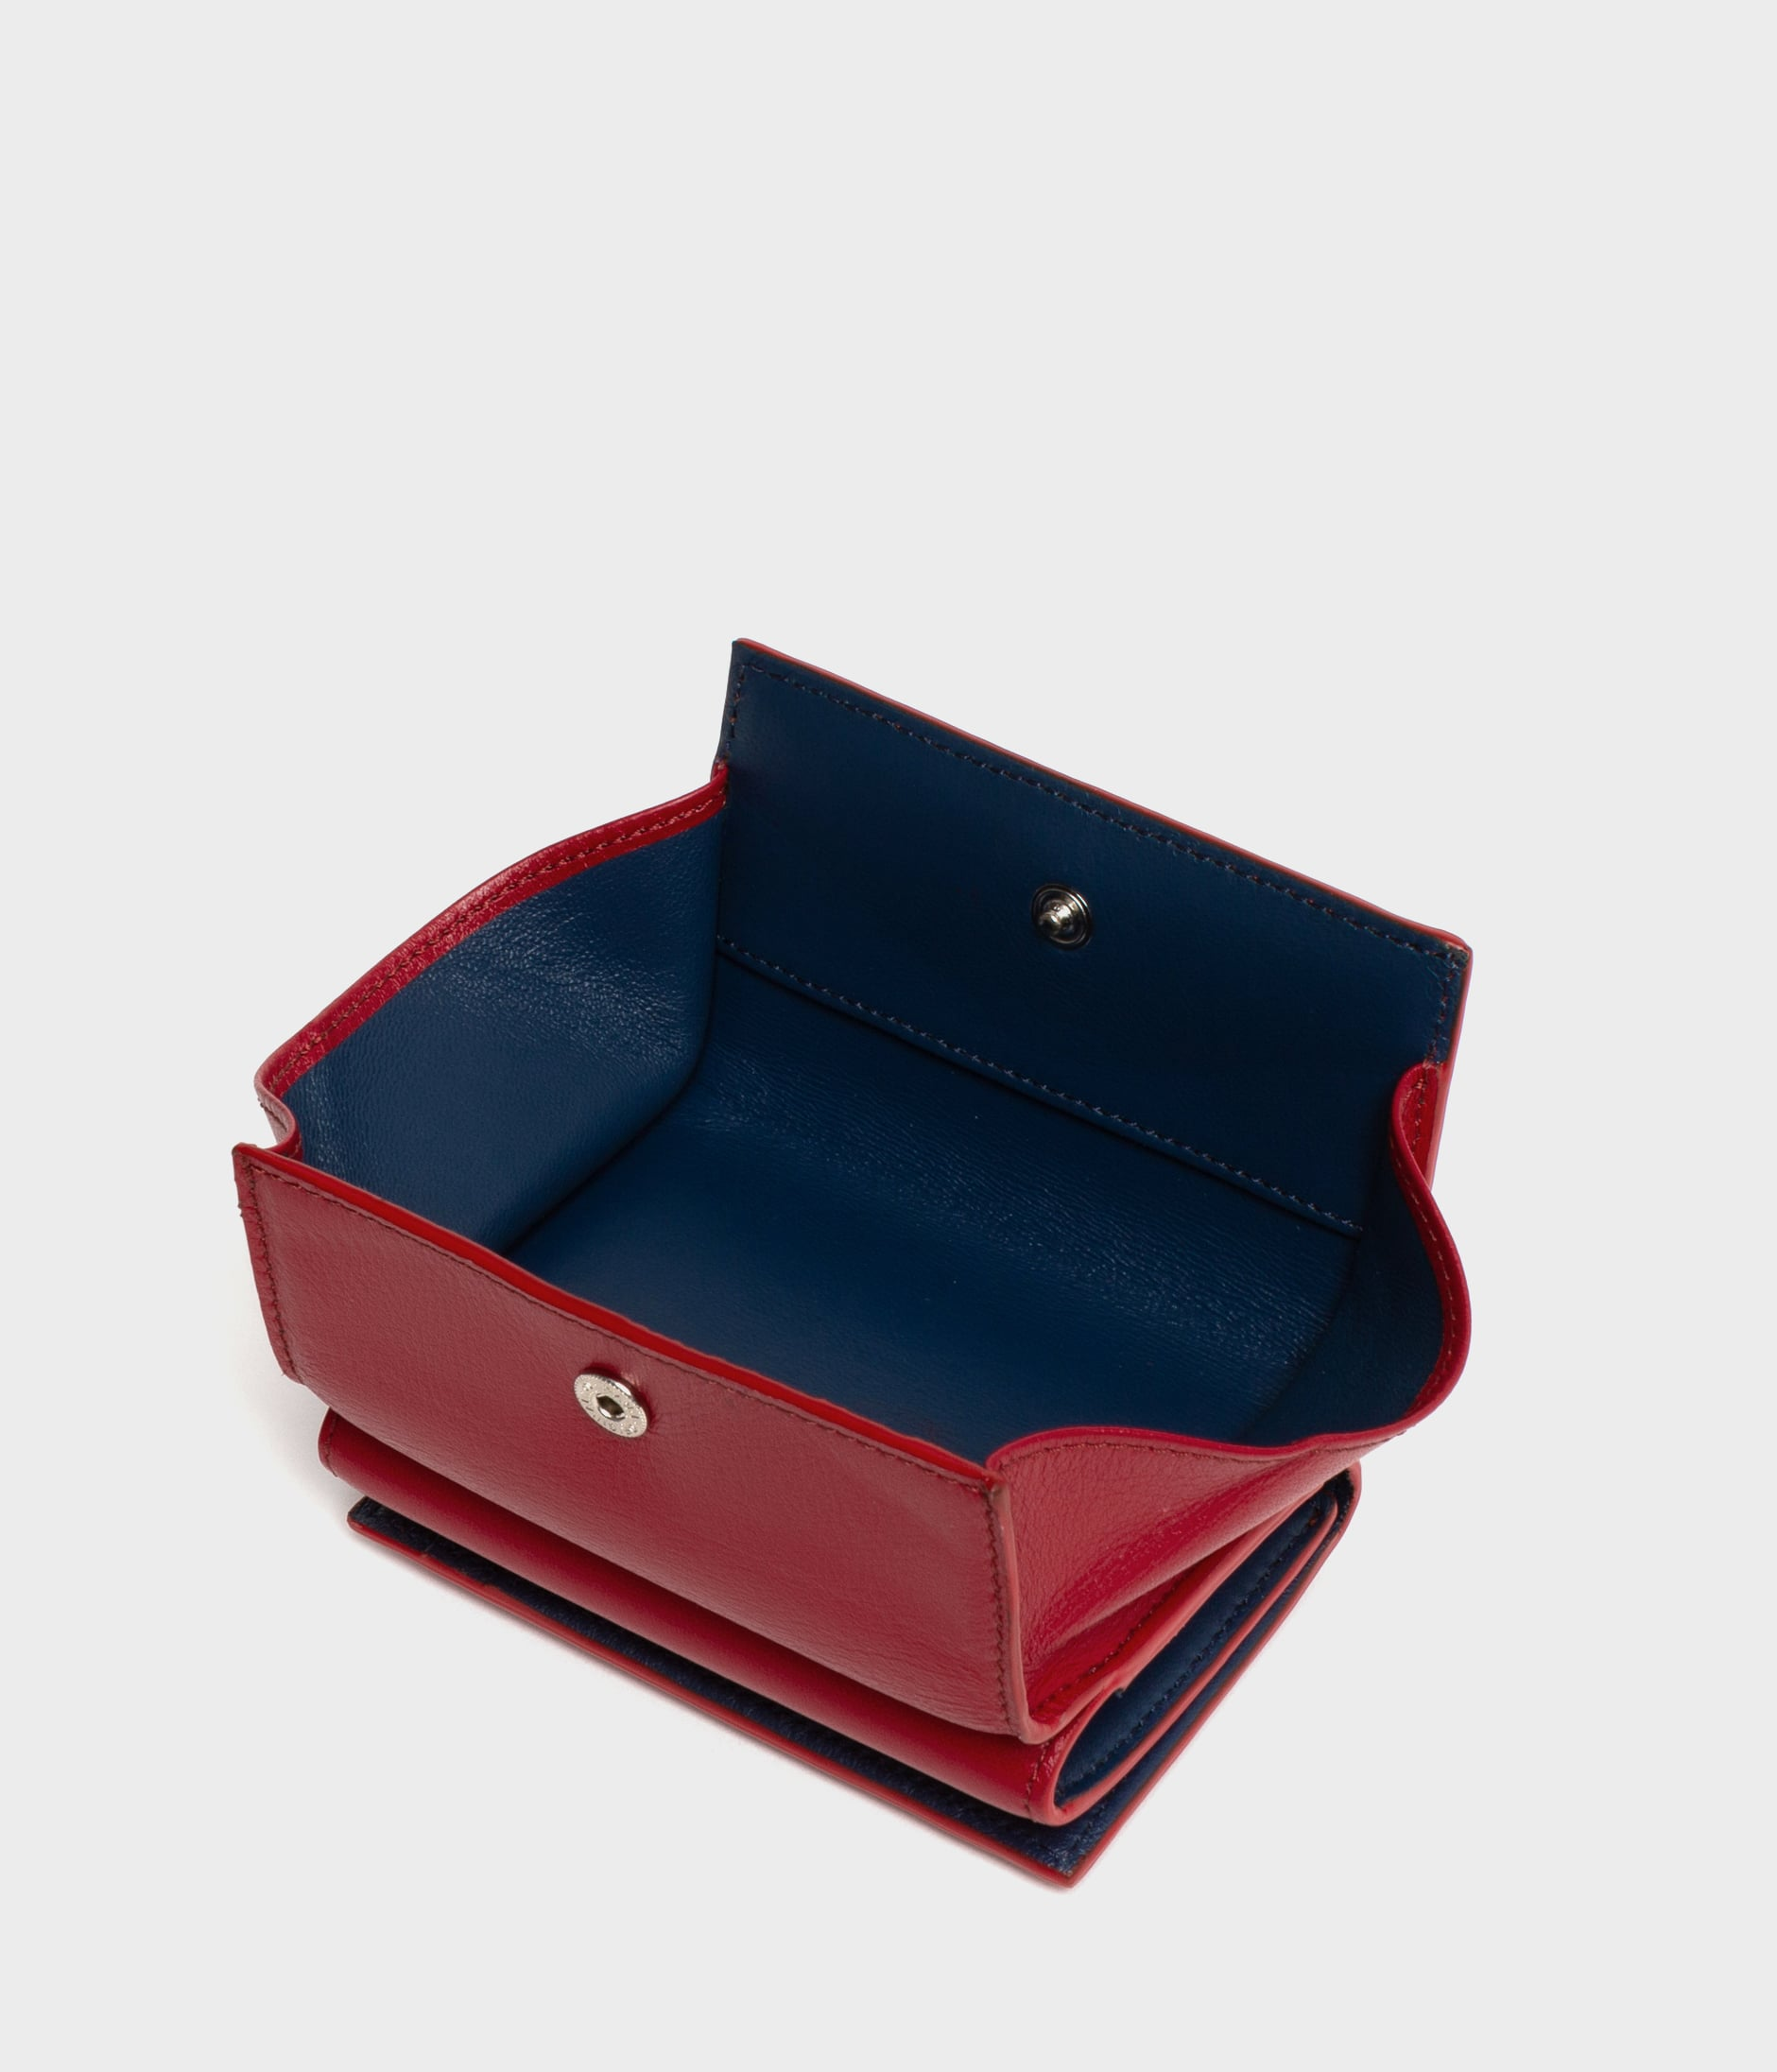 FOLD WALLET WITH STUDS 詳細画像 ROUGE 3